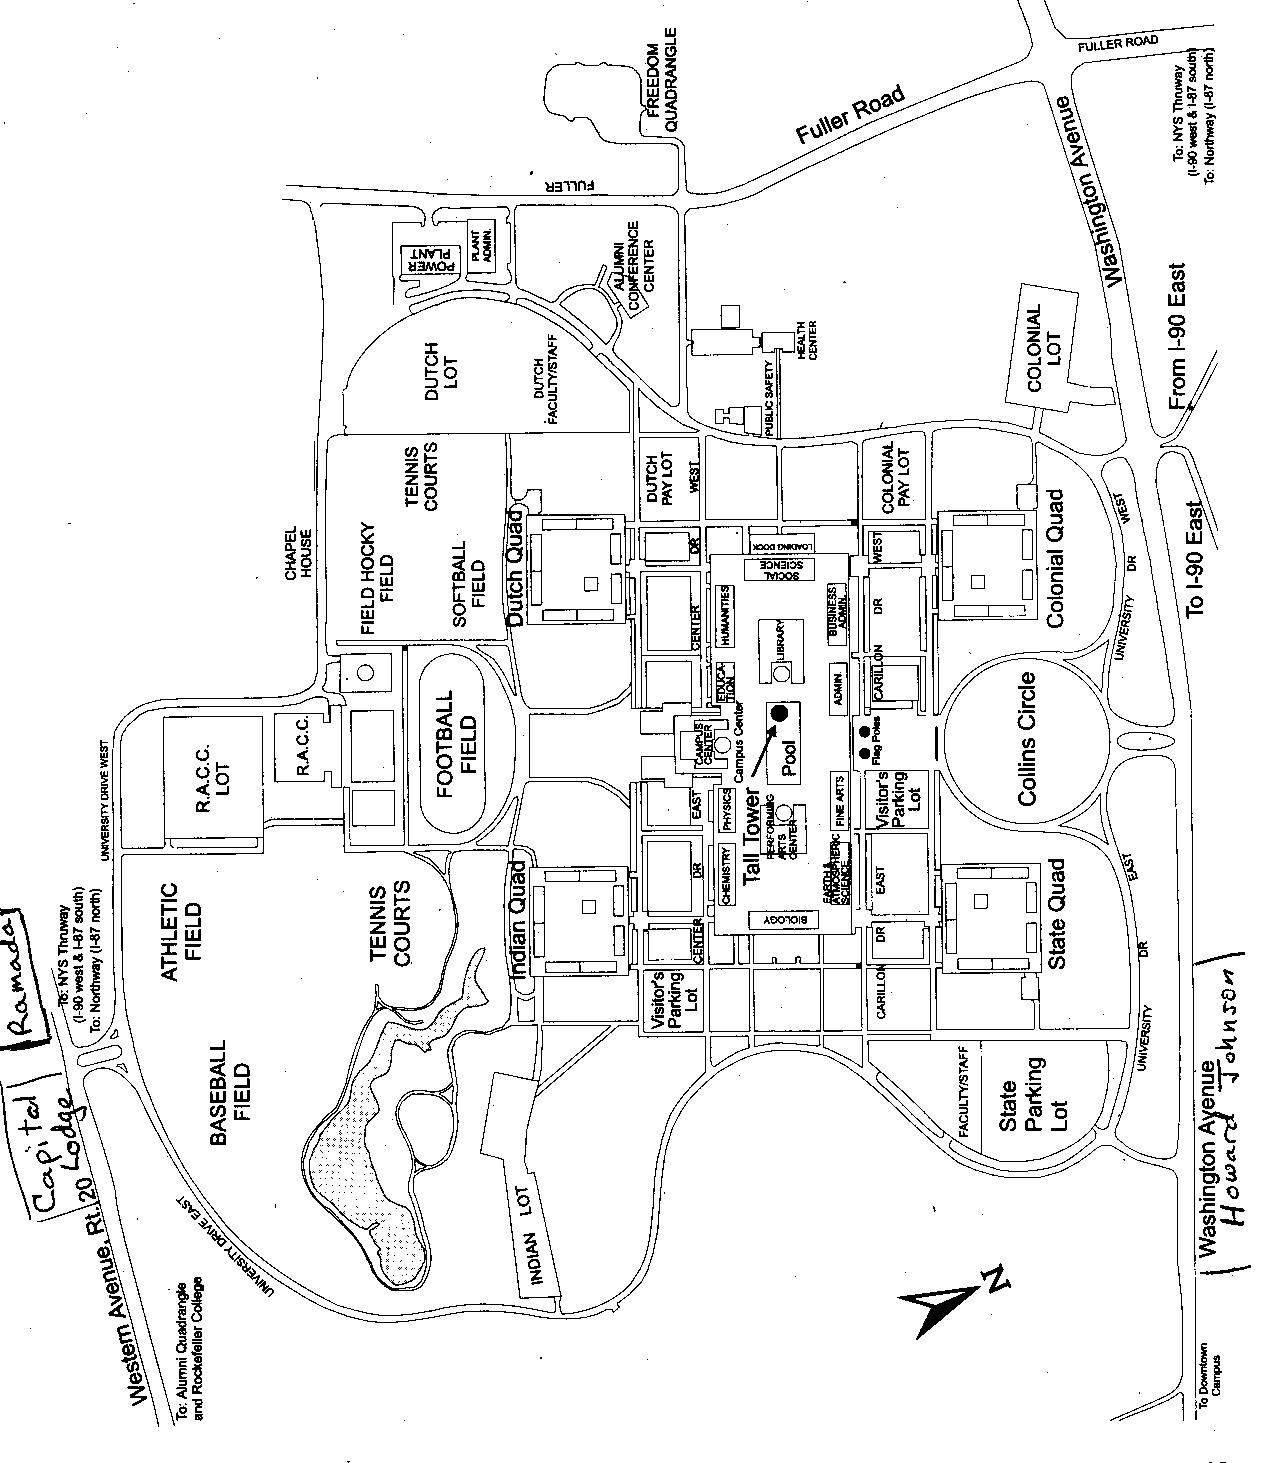 Directions And Campus Map For NYJM Conference At The